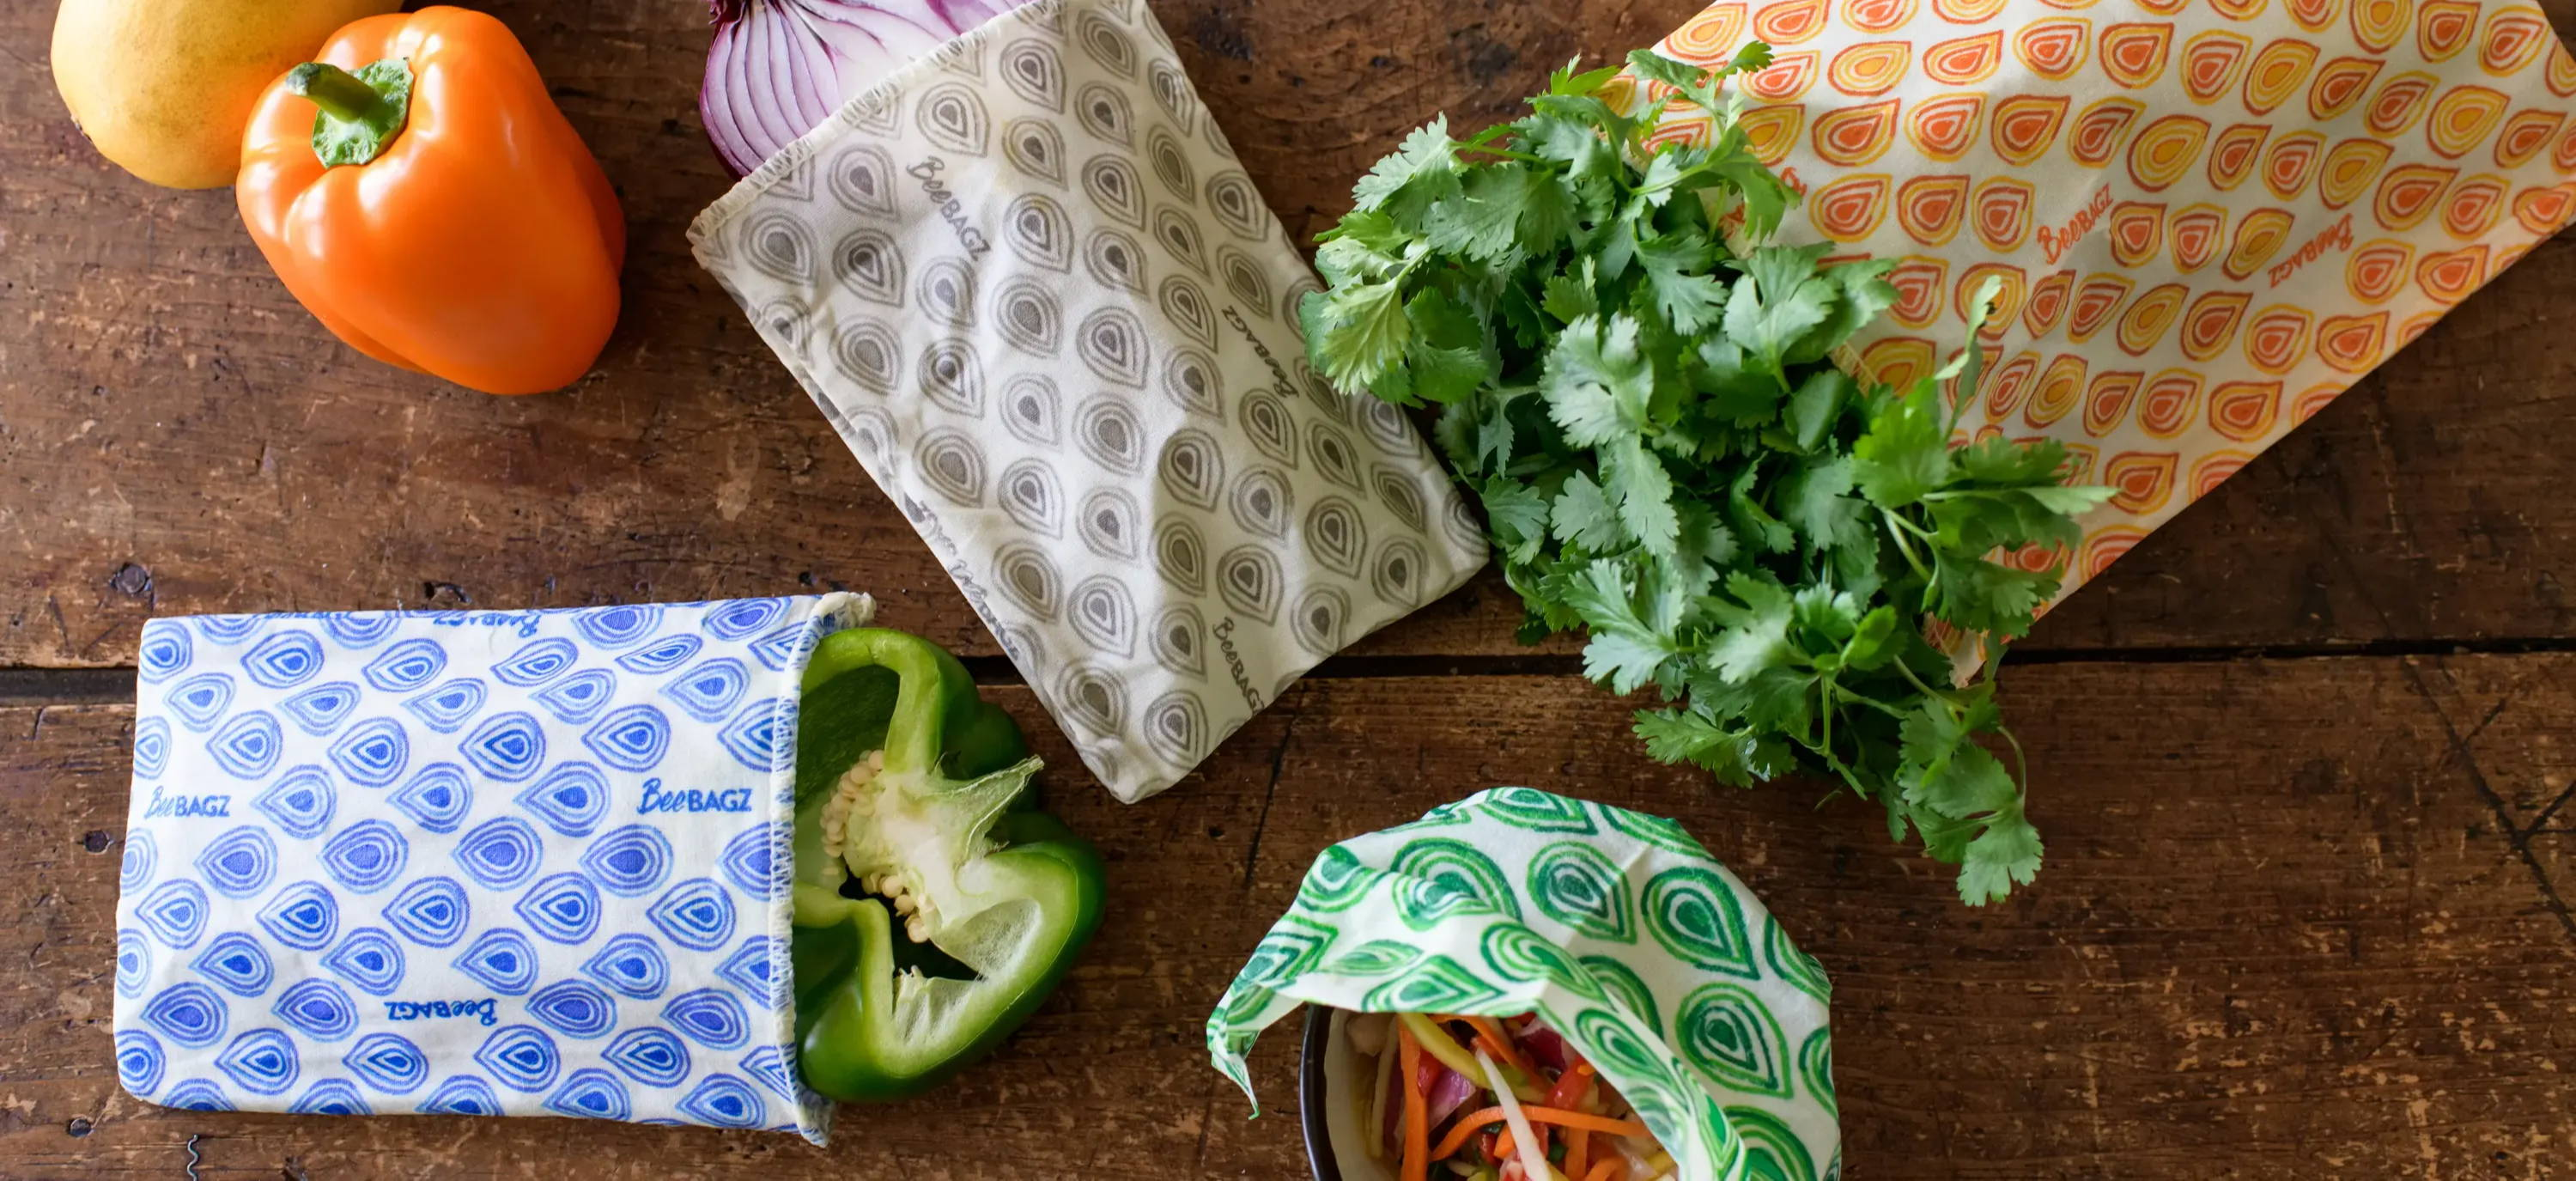 Beeswax wraps and bees wax reusable food storage bags for keeping produce fresh